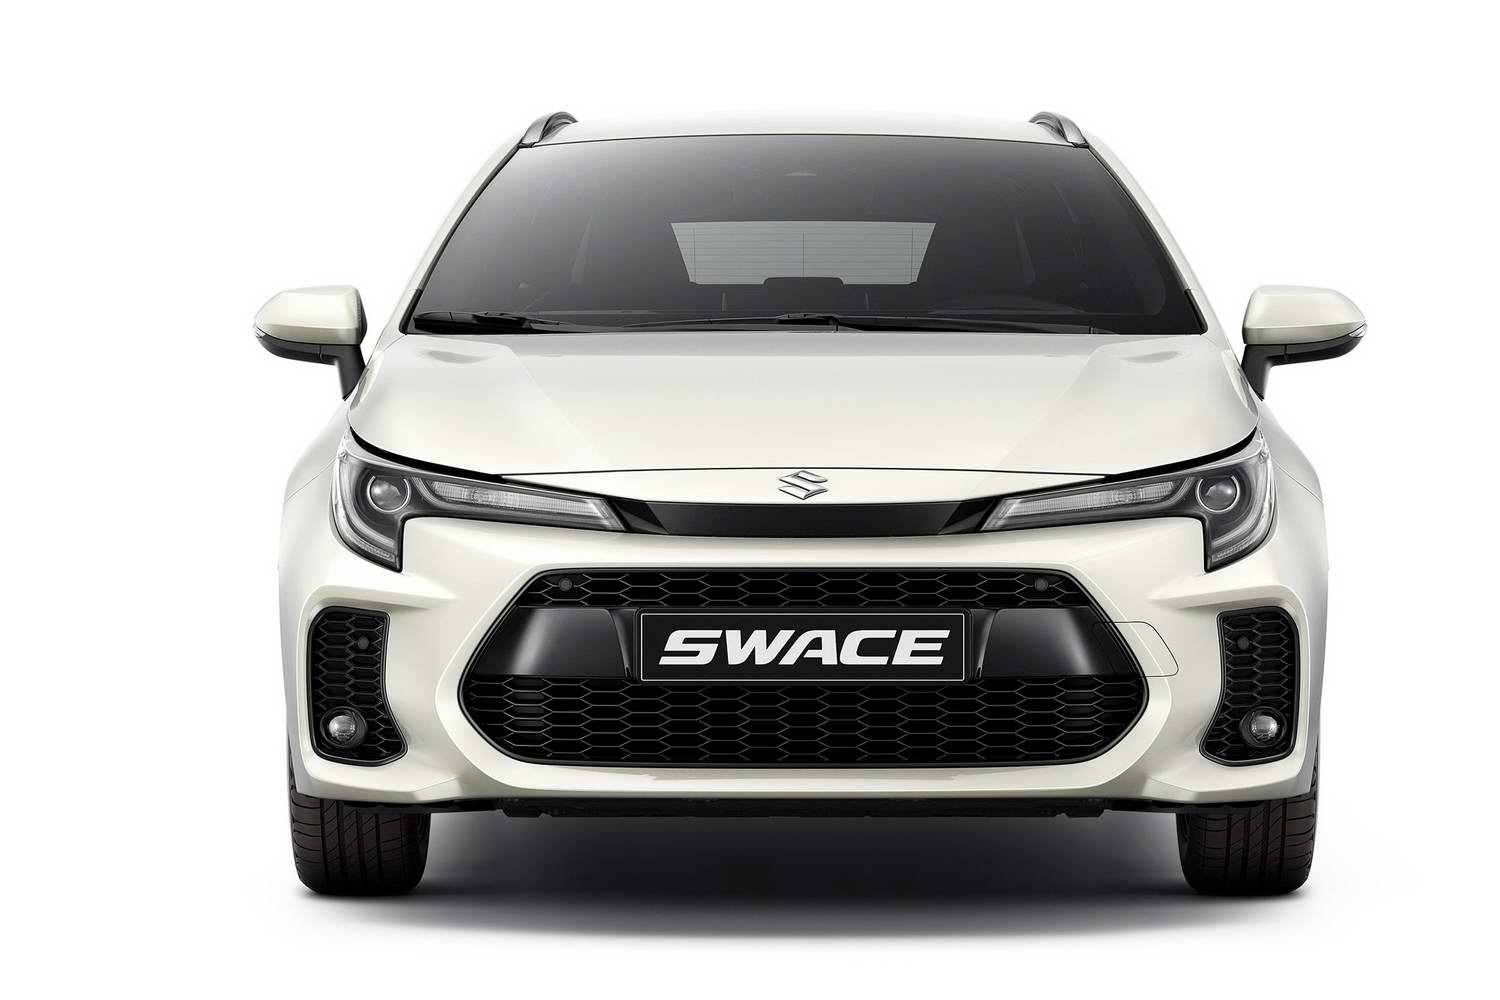 Suzuki shows off new Swace estate